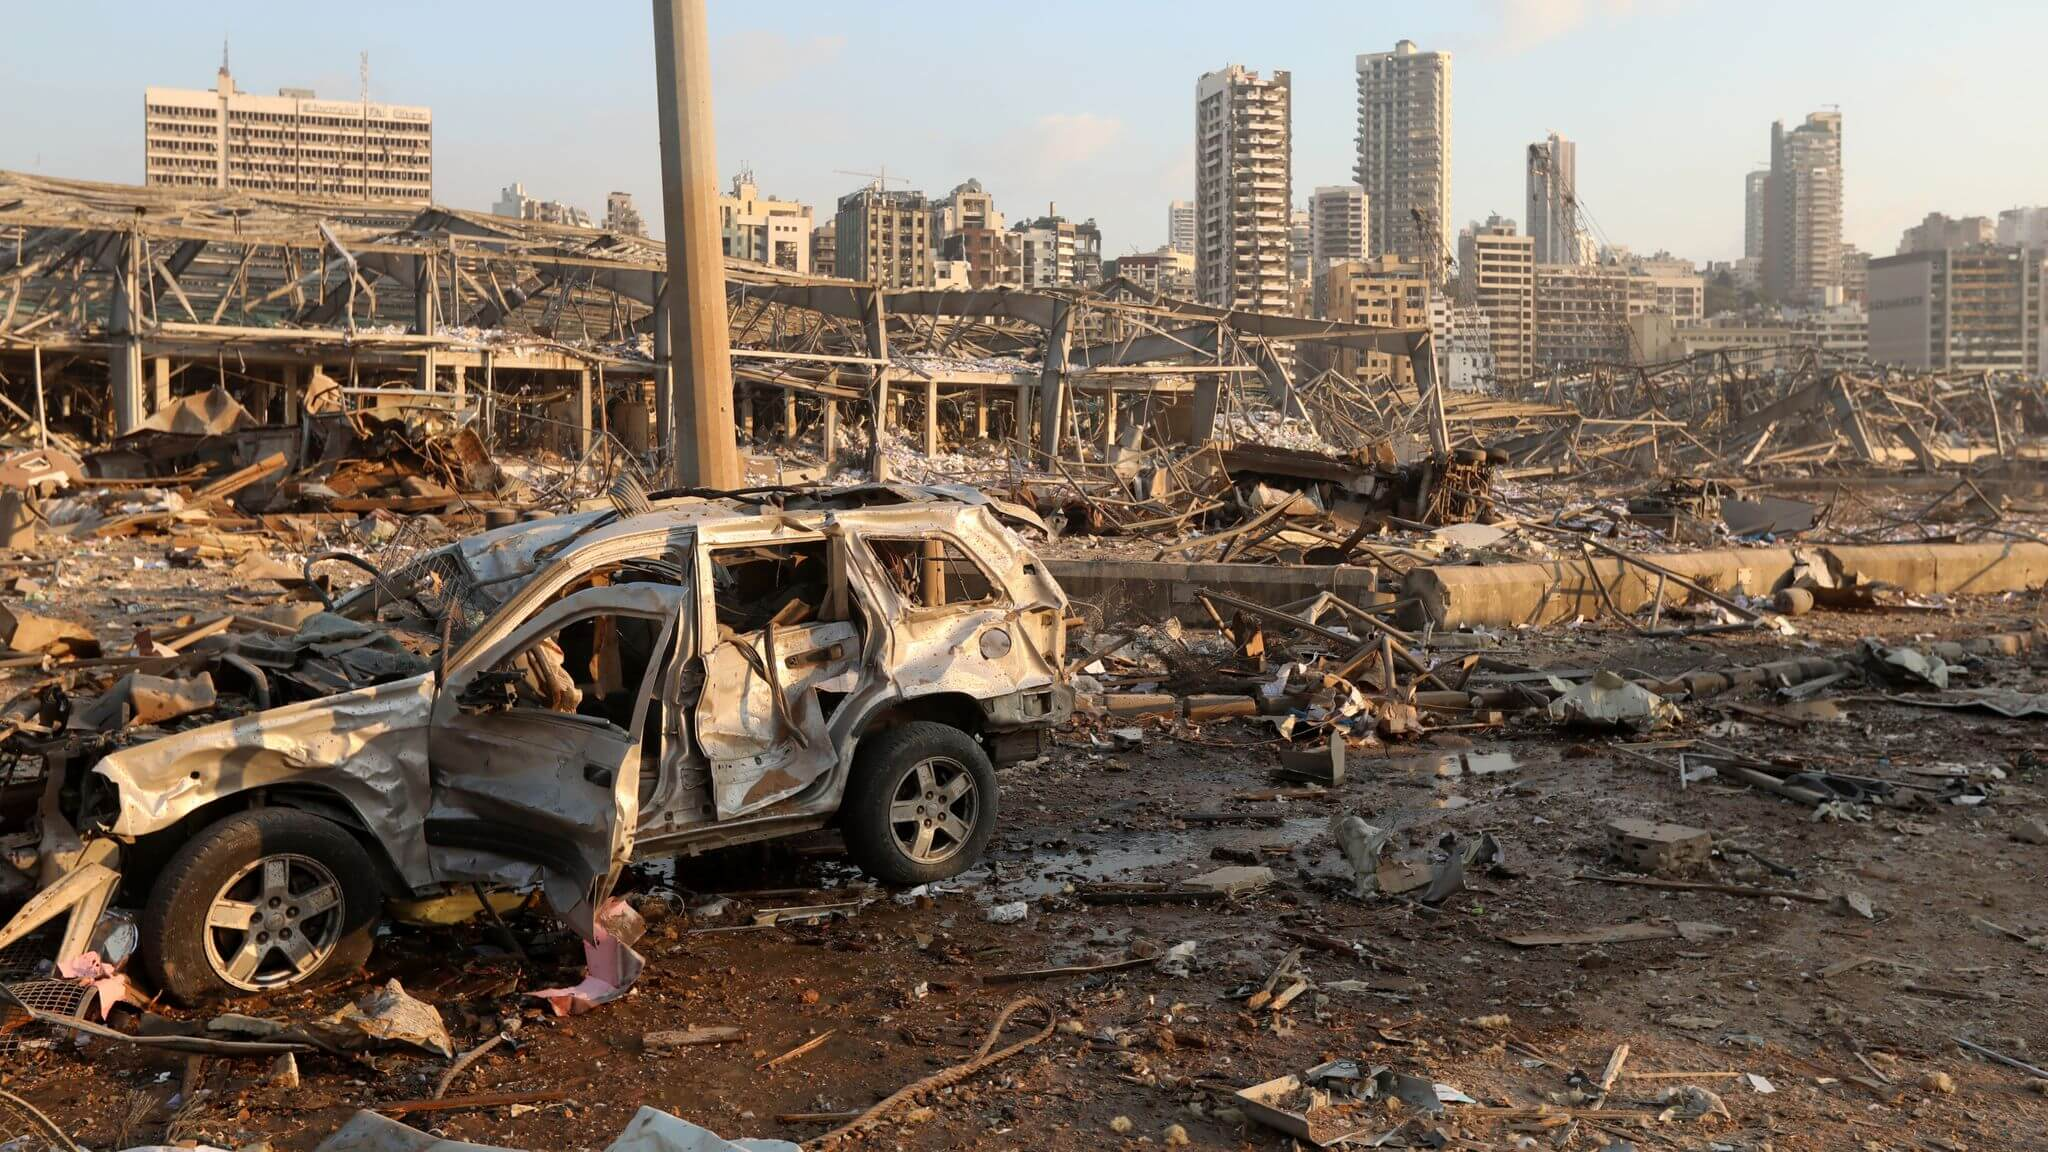 Three senior officials at the Port of Beirut arrested in Beirut Deadly Blast